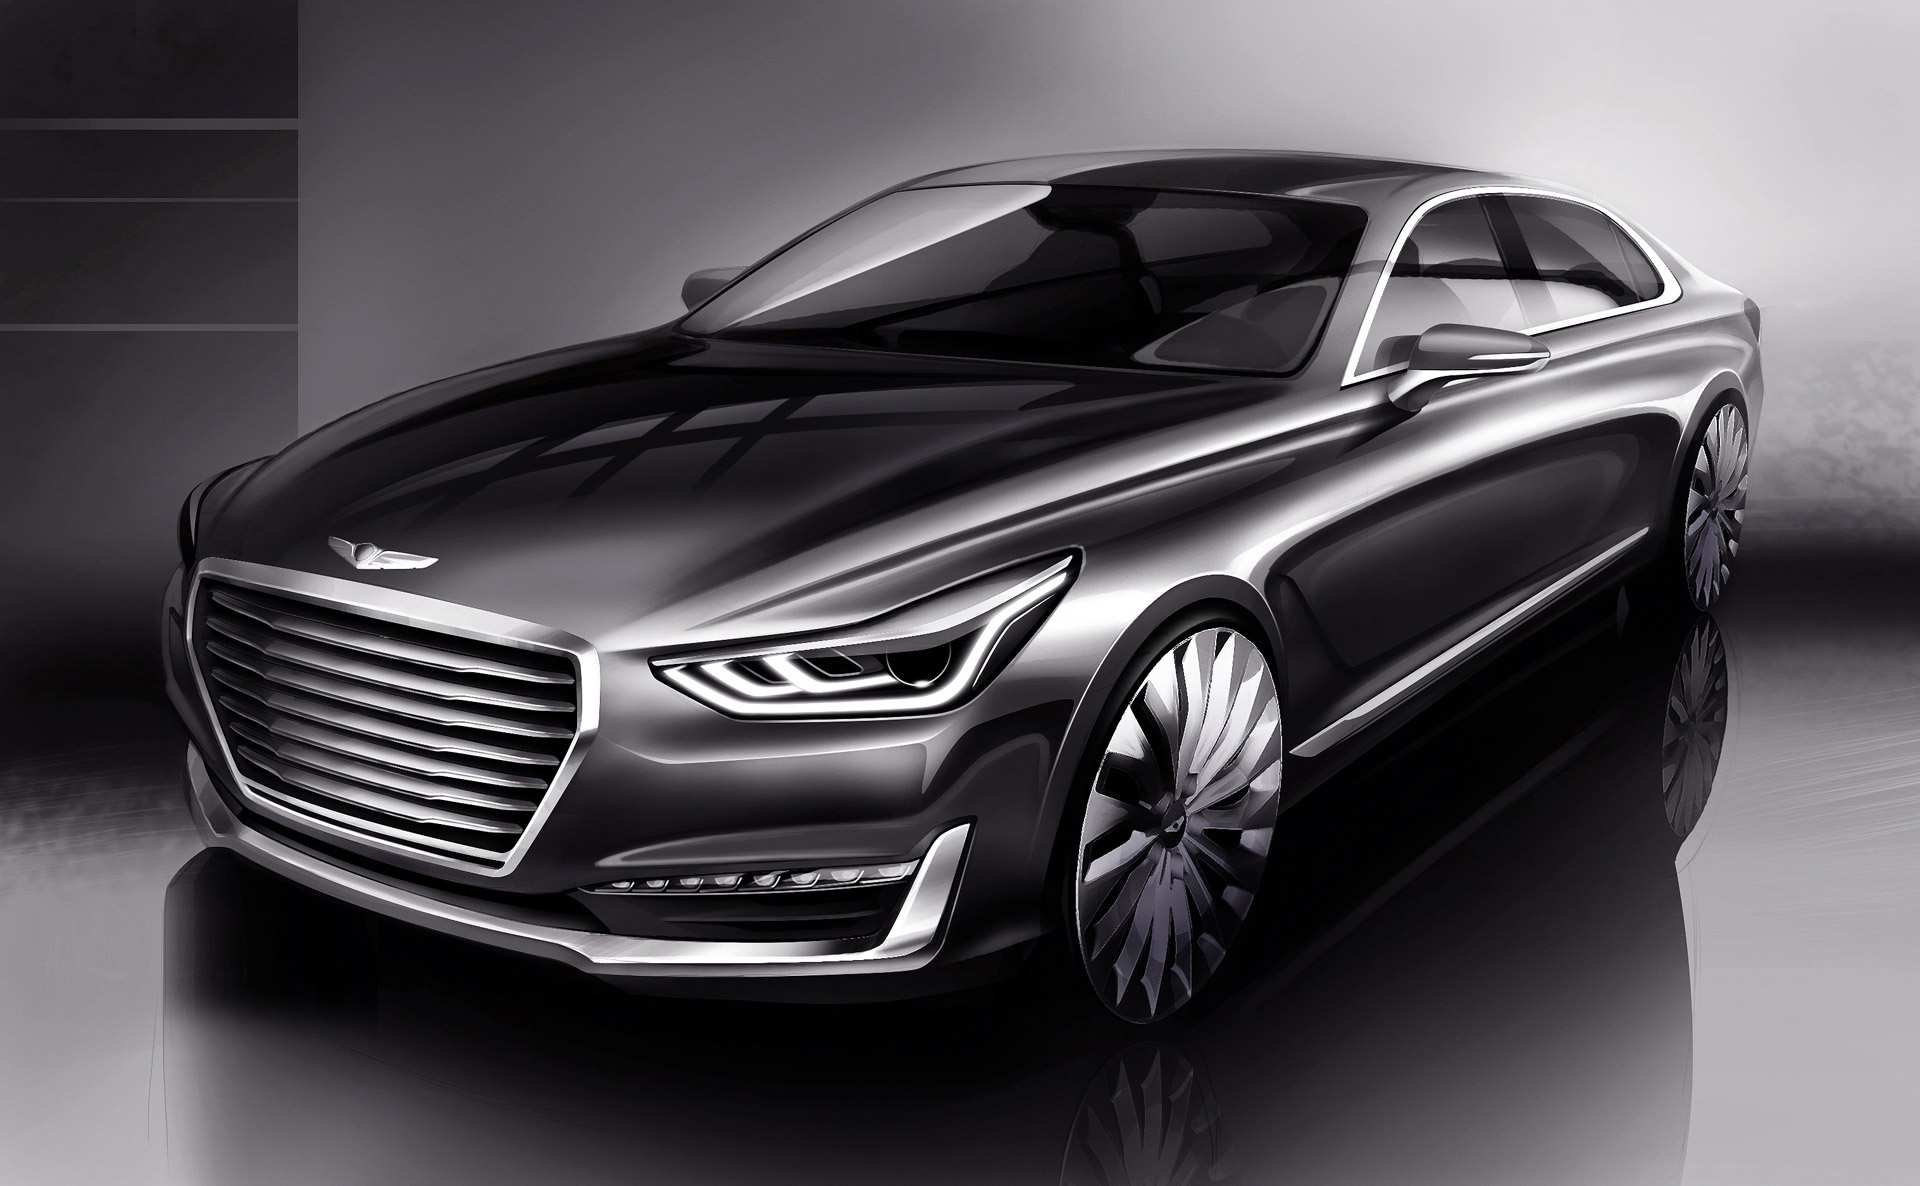 77 The Best 2020 Hyundai Equus Redesign And Review